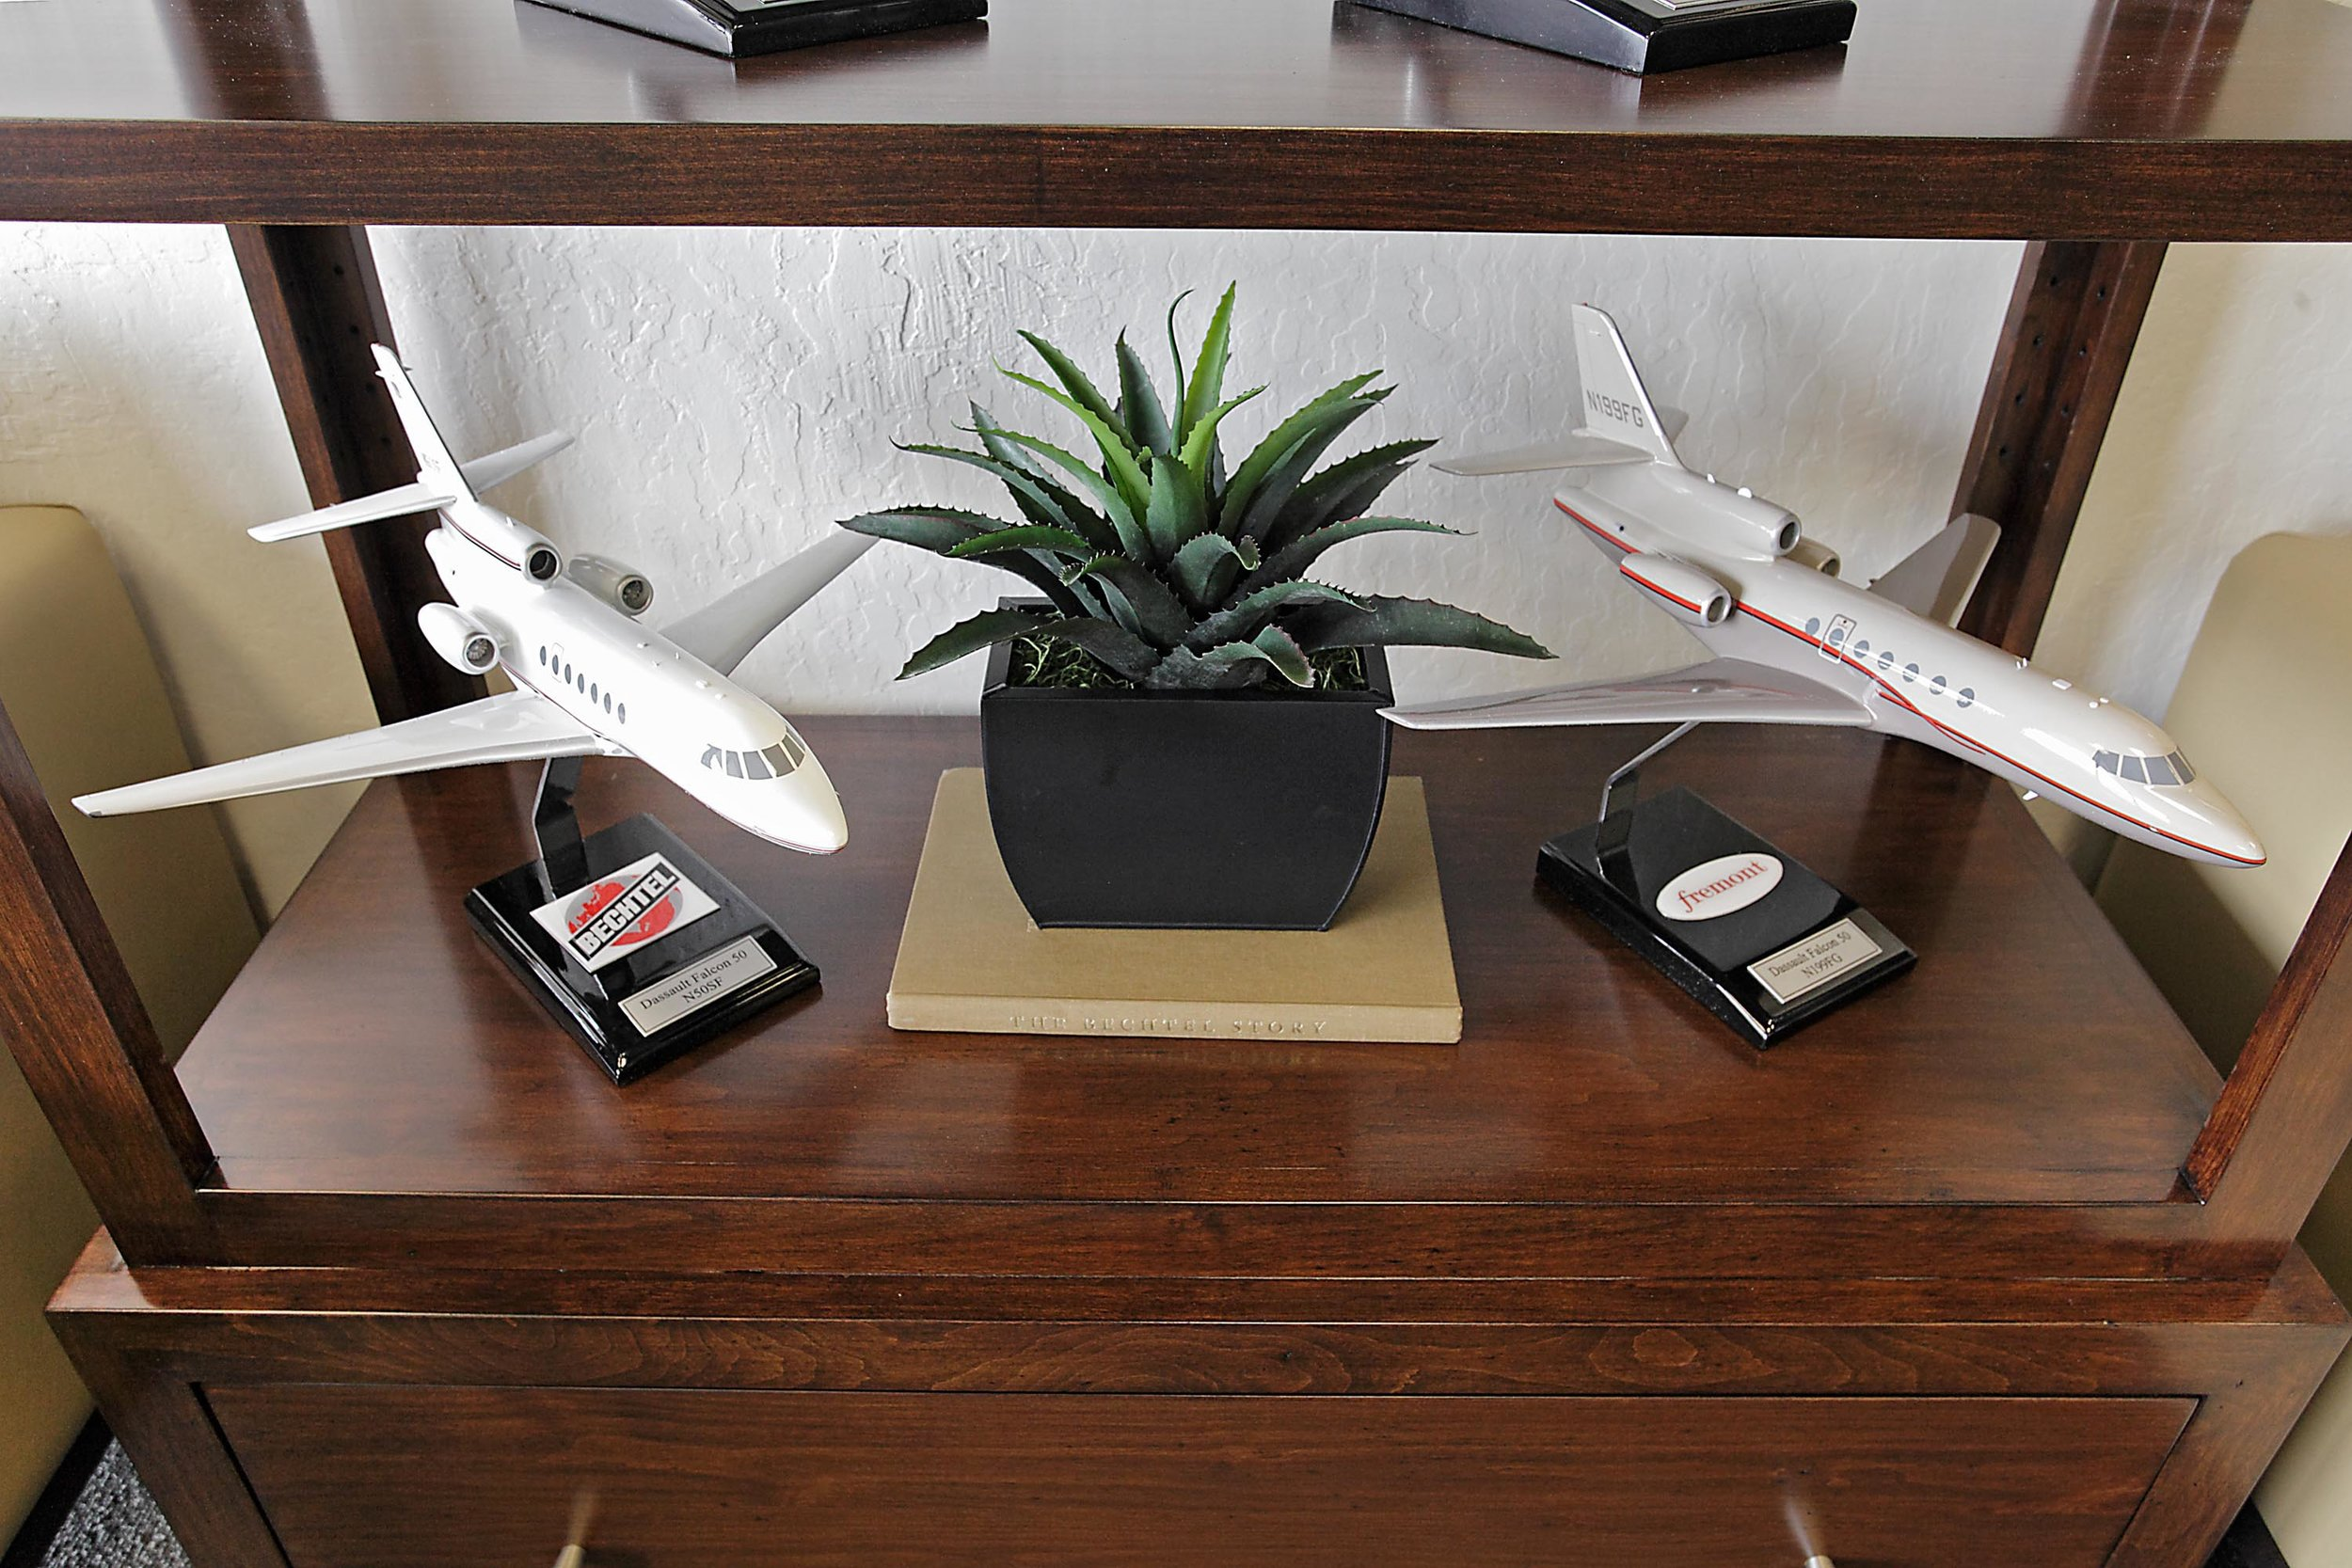 Airplane figurine and a flower vase